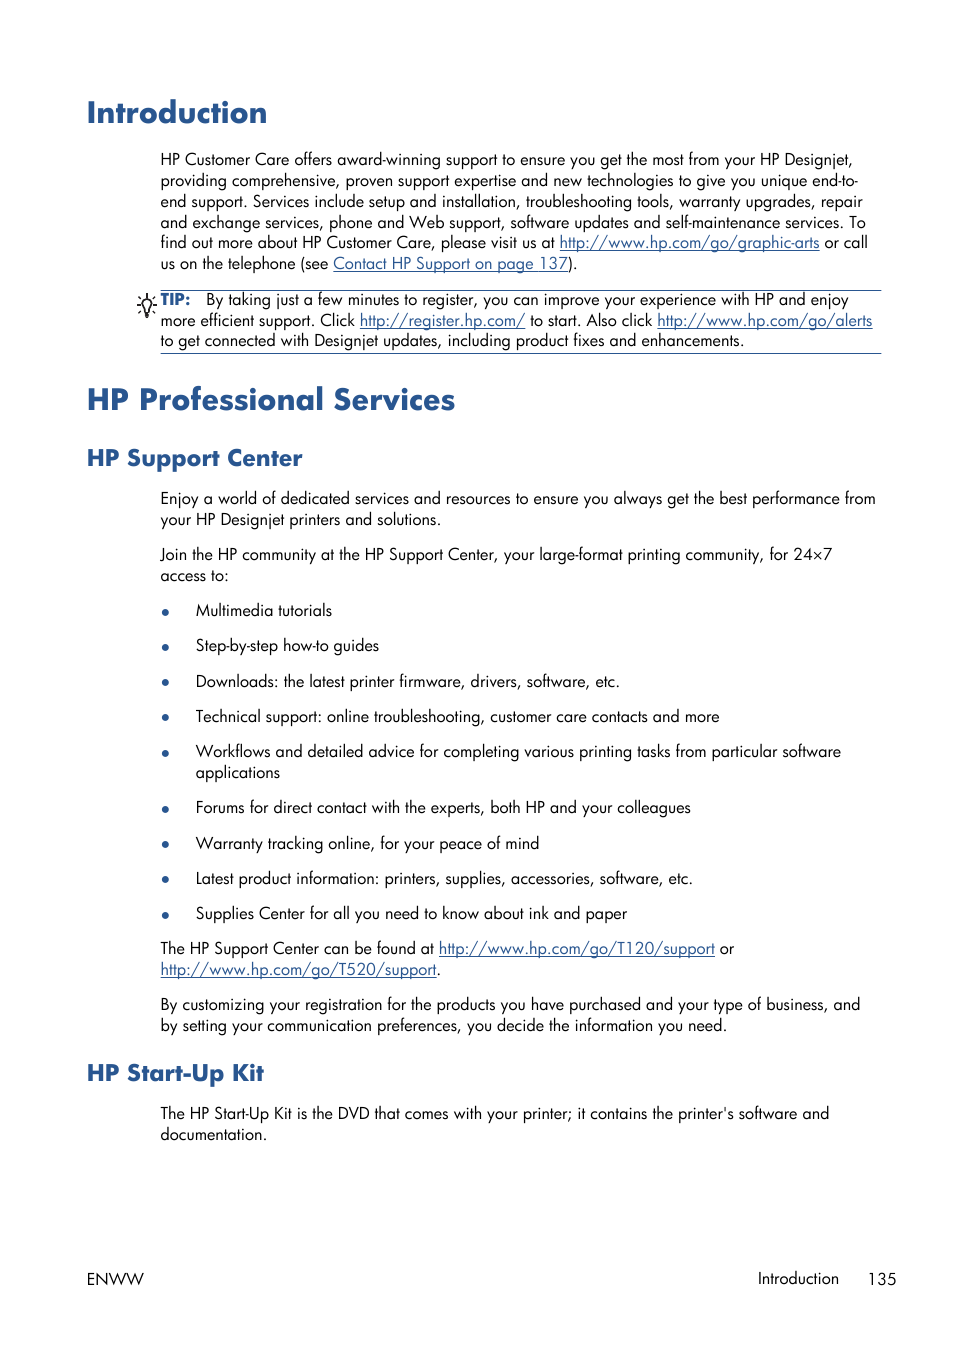 Introduction, Hp professional services, Hp support center   Hp start-up kit,